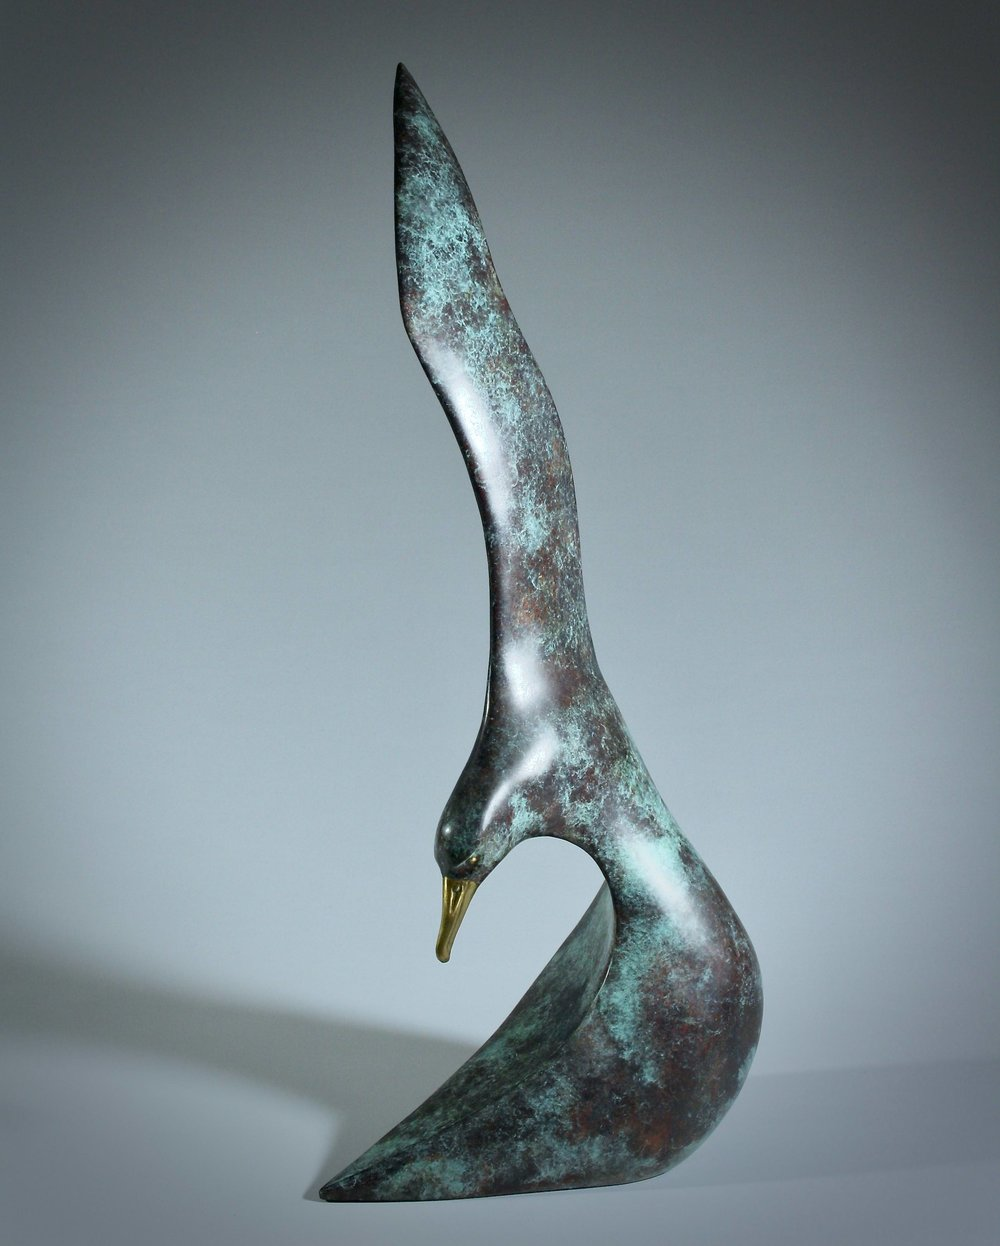 'Soaring Waves'     Dimensions:  64x29x19cm   Material:    Bronze Ltd. Edt. 6/25 - Chalkos Art Foundry   Artist Statement:  Graceful, unconventional lines are used in this sculpture to form volume and expression. Marrying the lines of the wing and the head of the Albatross to form a wave, defines the Albatross in harmony with its' environment.   Awards:   2014 Best Composition Award – Wildlife Art @ Discovery, Canberra